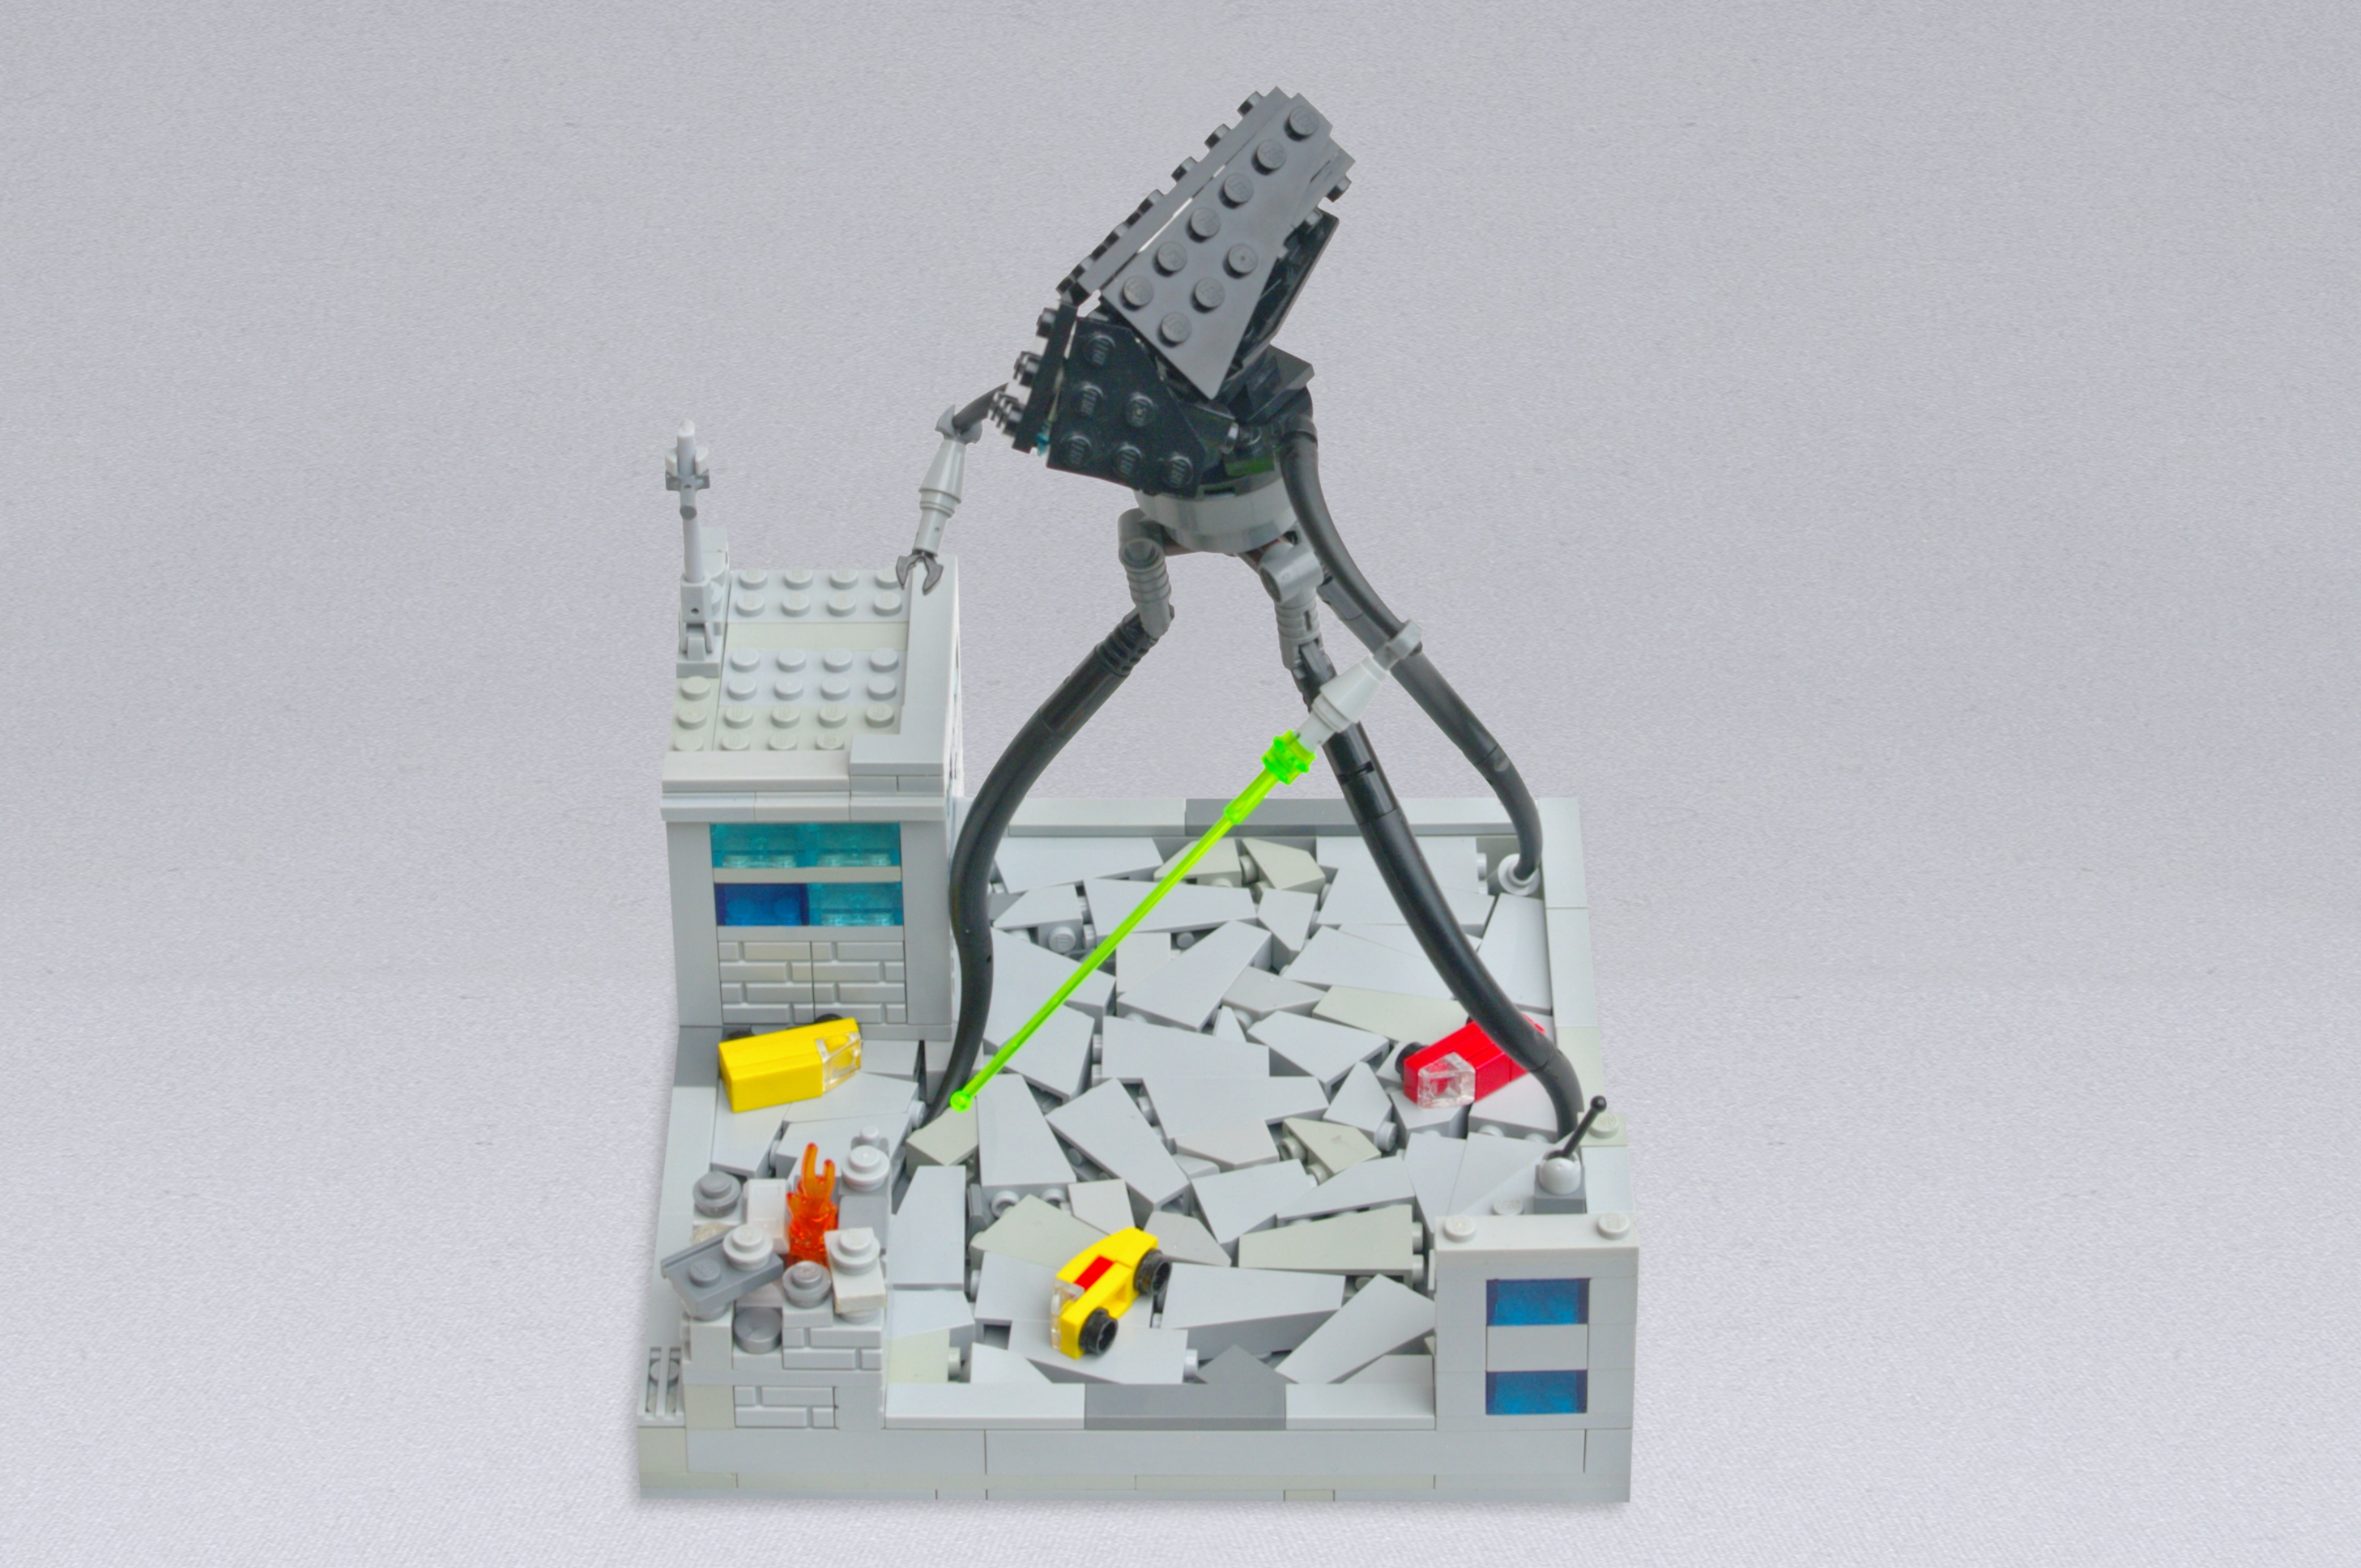 Concurs Microscale Movie Scenes – Creatia 7: Tripod Attack